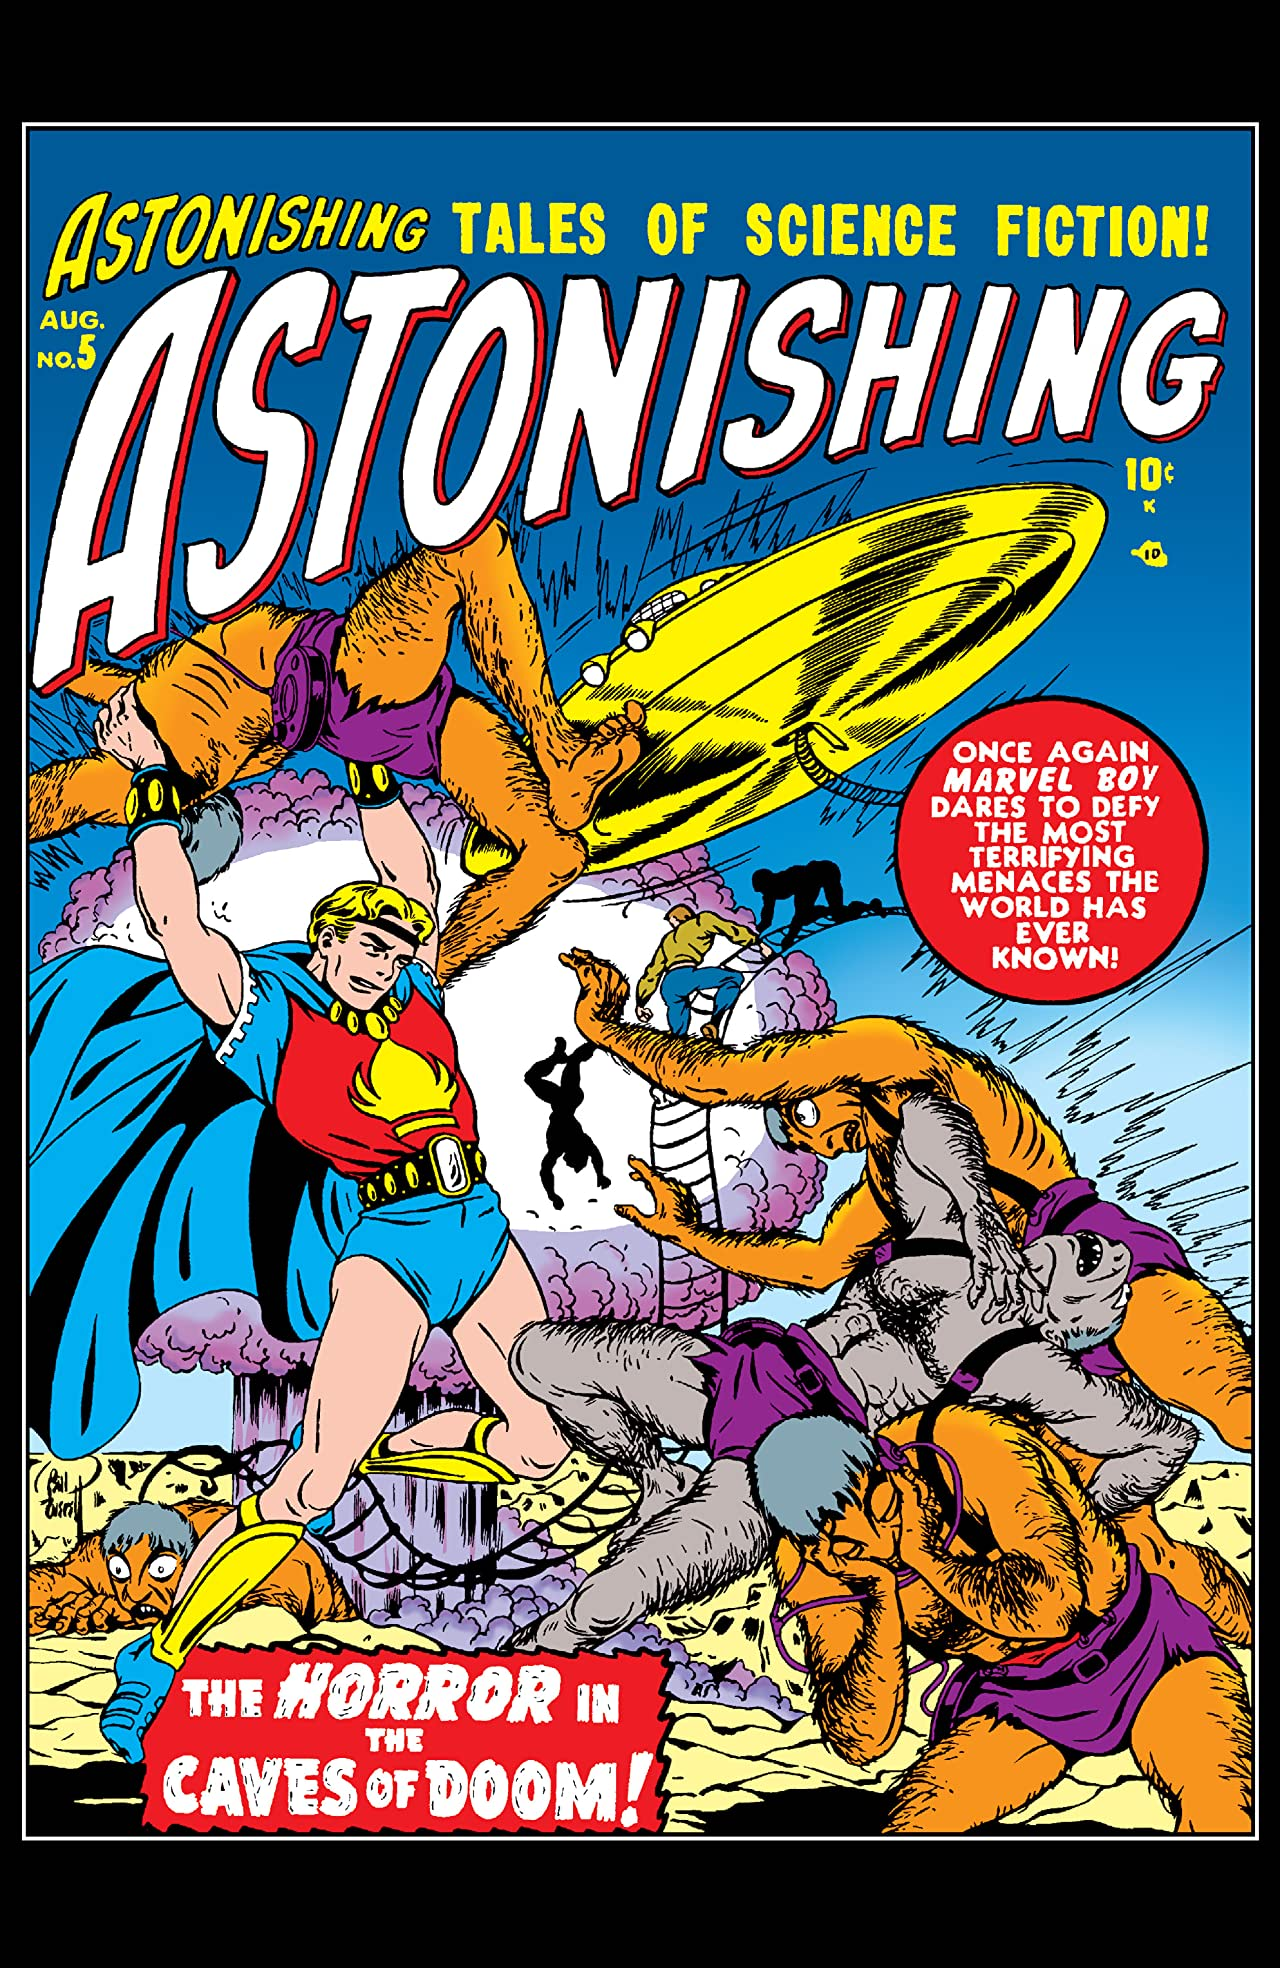 Astonishing (1951-1957) #5